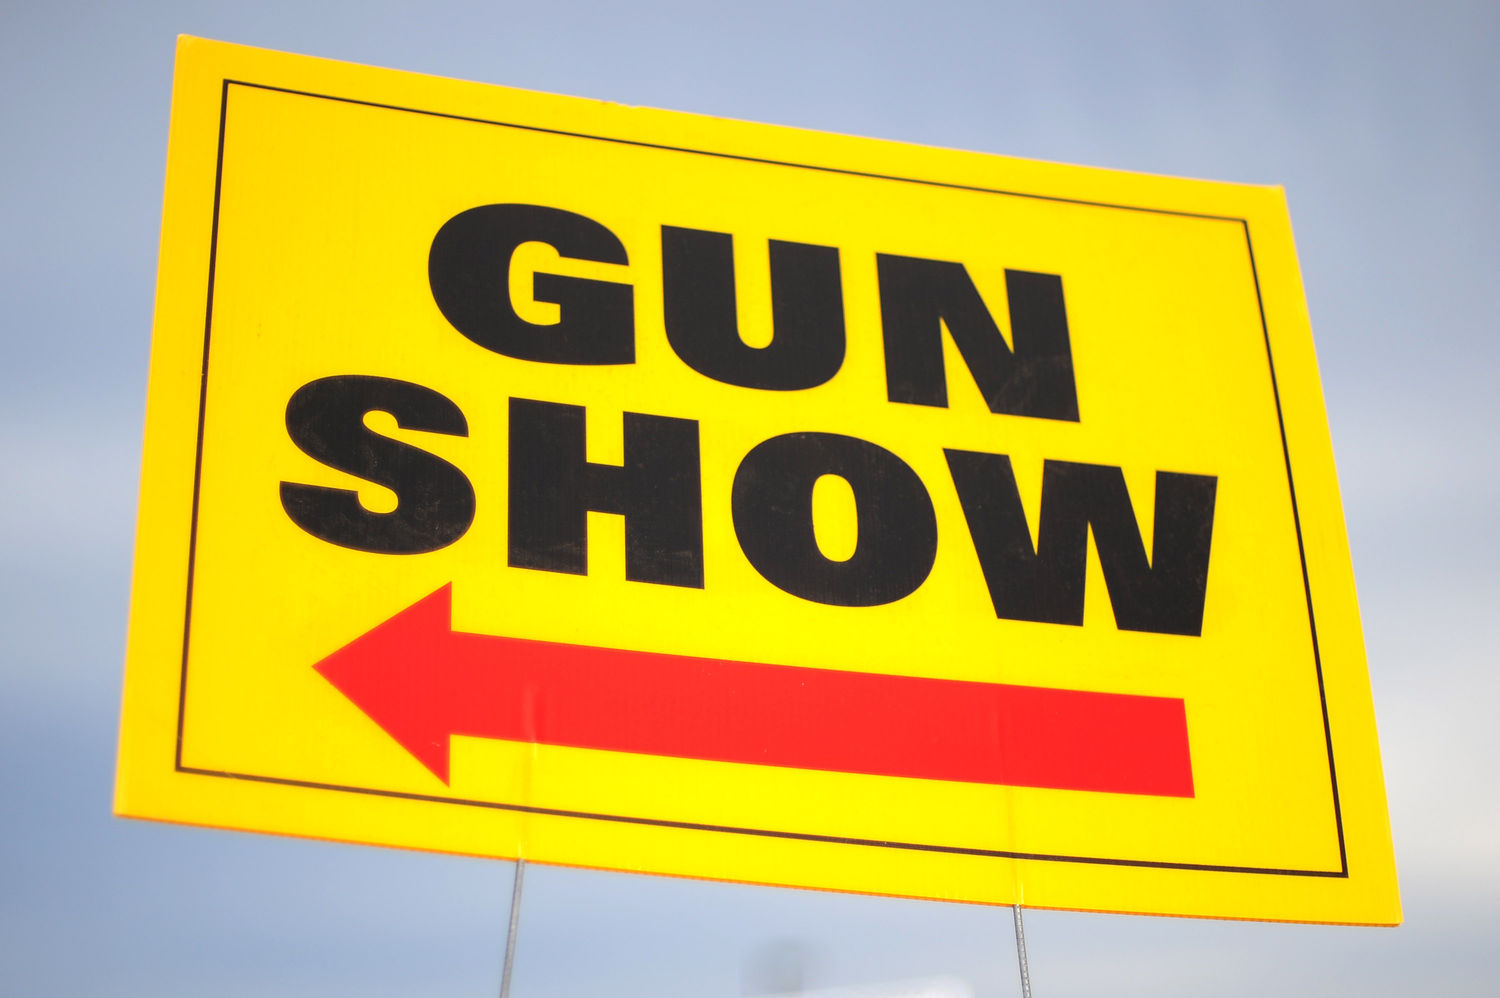 Gun Show sign in Chantilly, Virginia